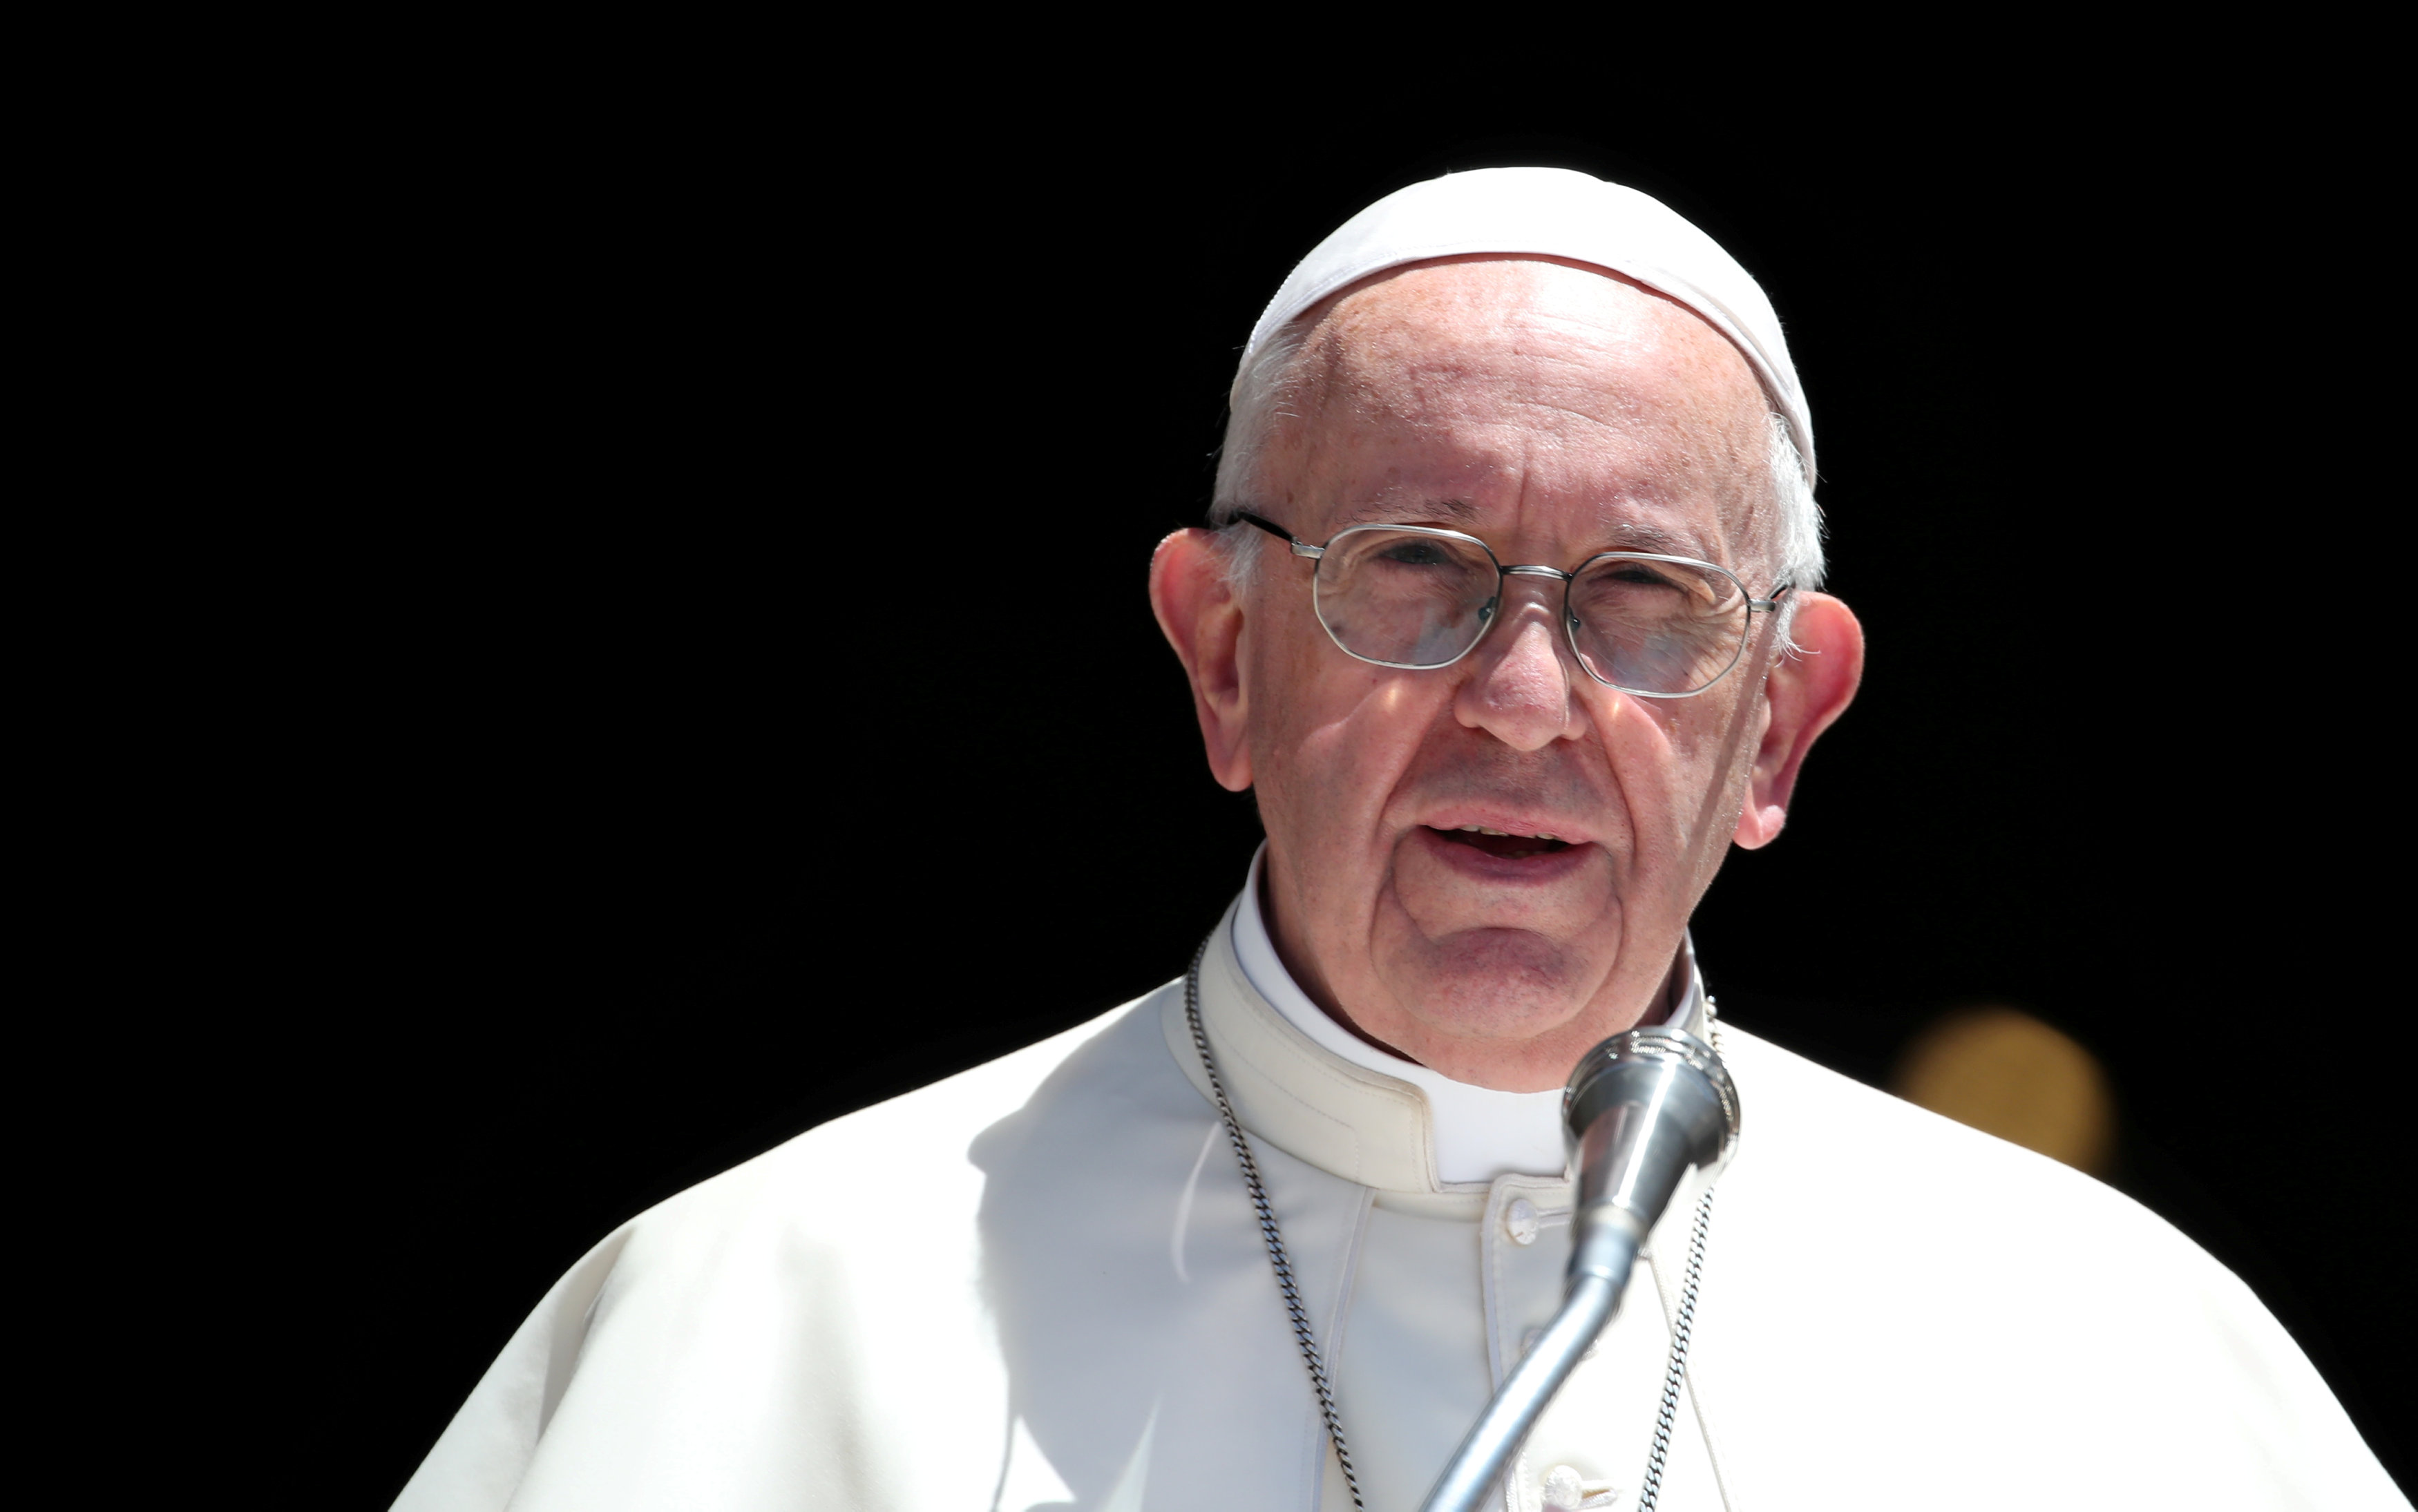 FILE PHOTO: Pope Francis speaks at the St. Nicholas Basilica in Bari, southern Italy